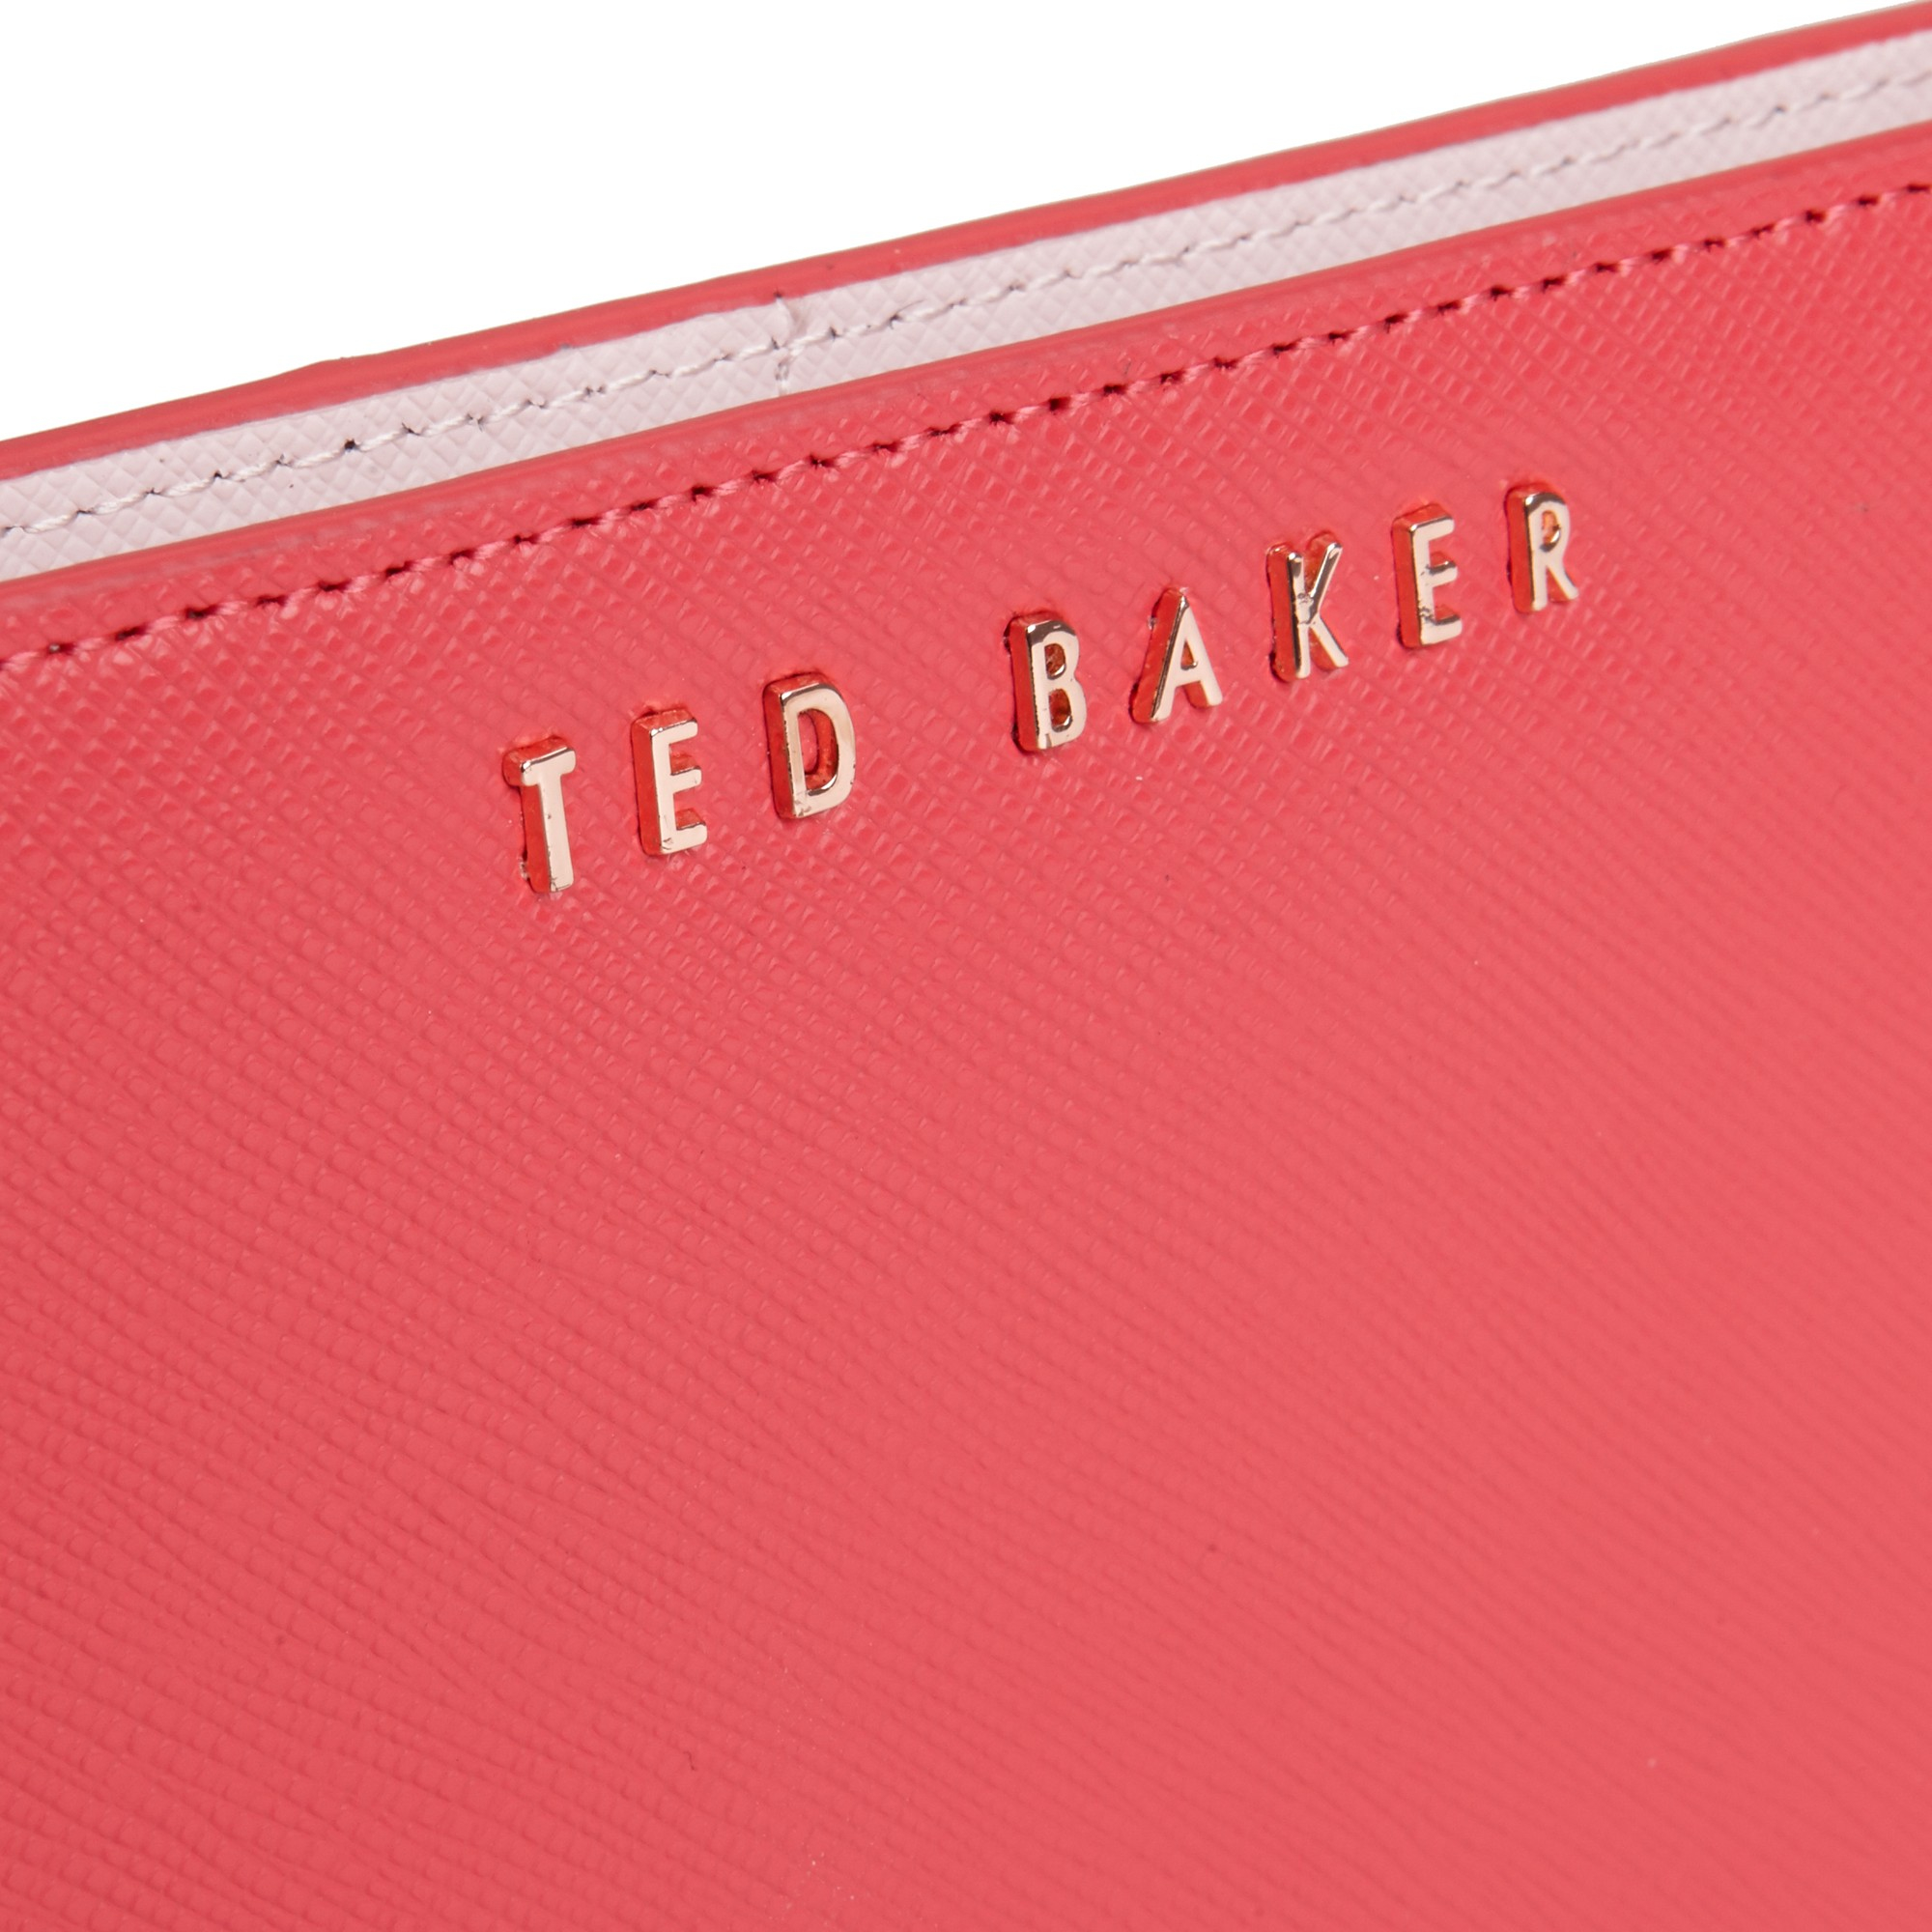 e21df06be54151 Ted Baker Alaniy Crosshatch Matinee Purse in Red - Lyst